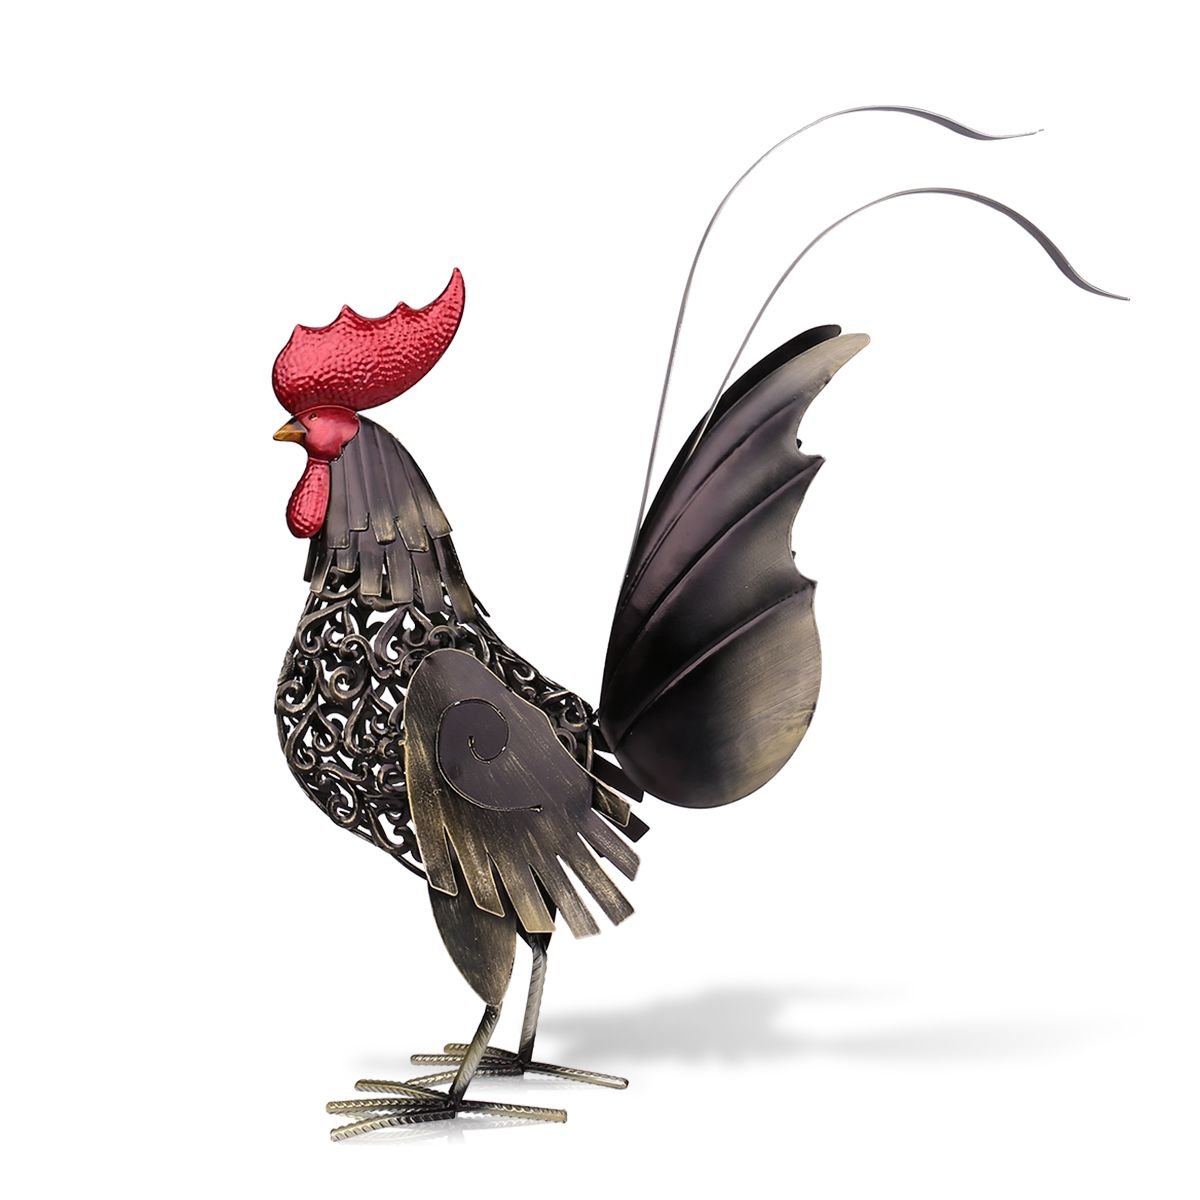 Tooarts Metal Figurine Iron Rooster Home Decor Articles: Popular Metal Rooster Decor-Buy Cheap Metal Rooster Decor